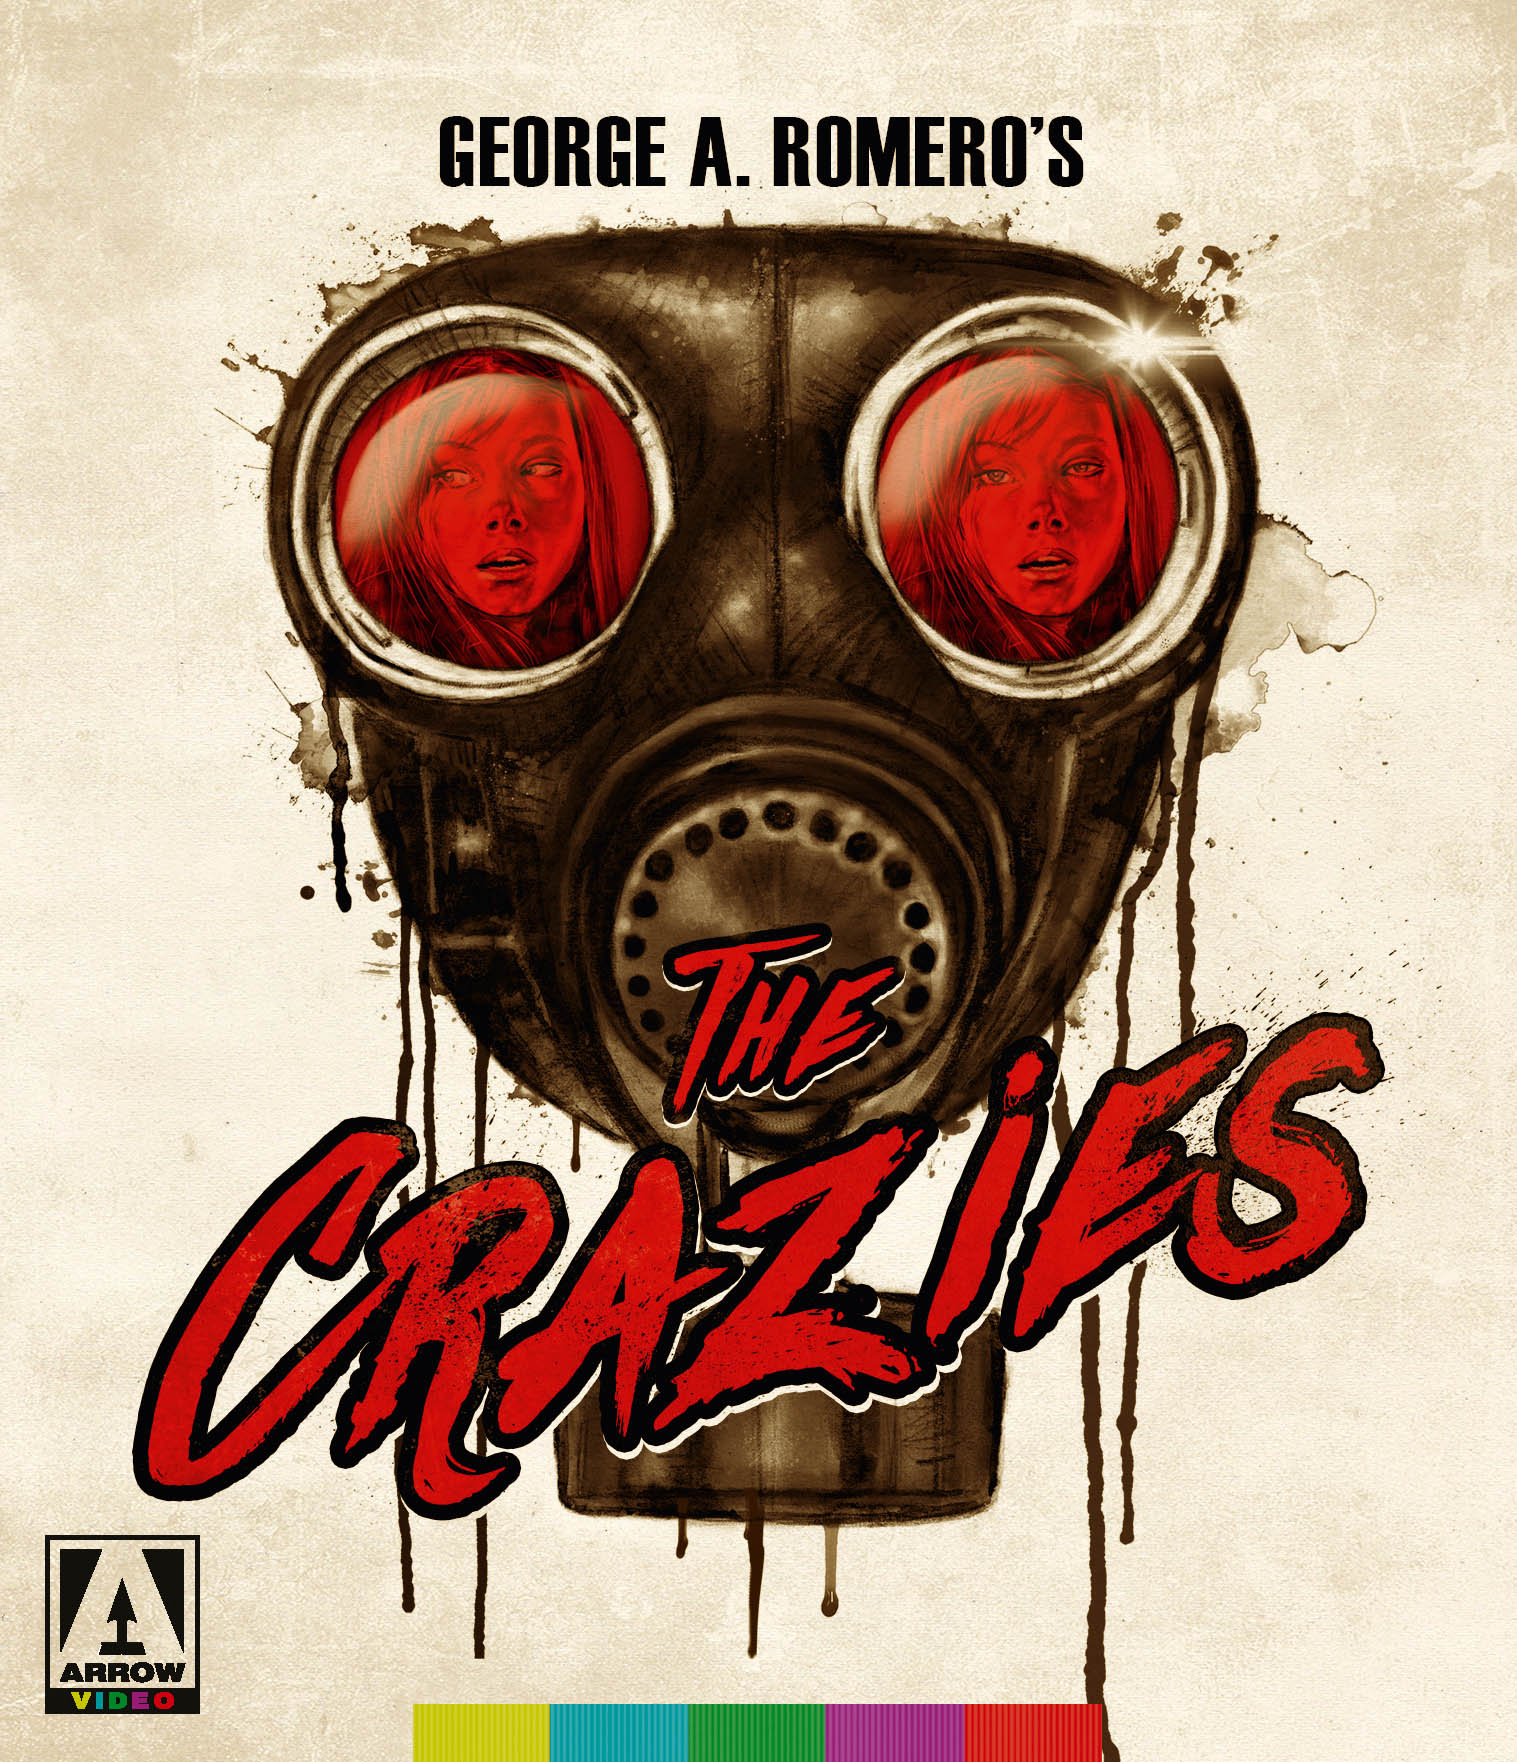 the crazies review The crazies is a remake of a 1973 movie with the same name, written and directed by george romero, the brains behind night of the living dead (1968), dawn of the dead (1978) and most recently, diary of the dead (2008) romero is credited as a writer for the remake and both stories are basically the same: the inhabitants of a small town start .